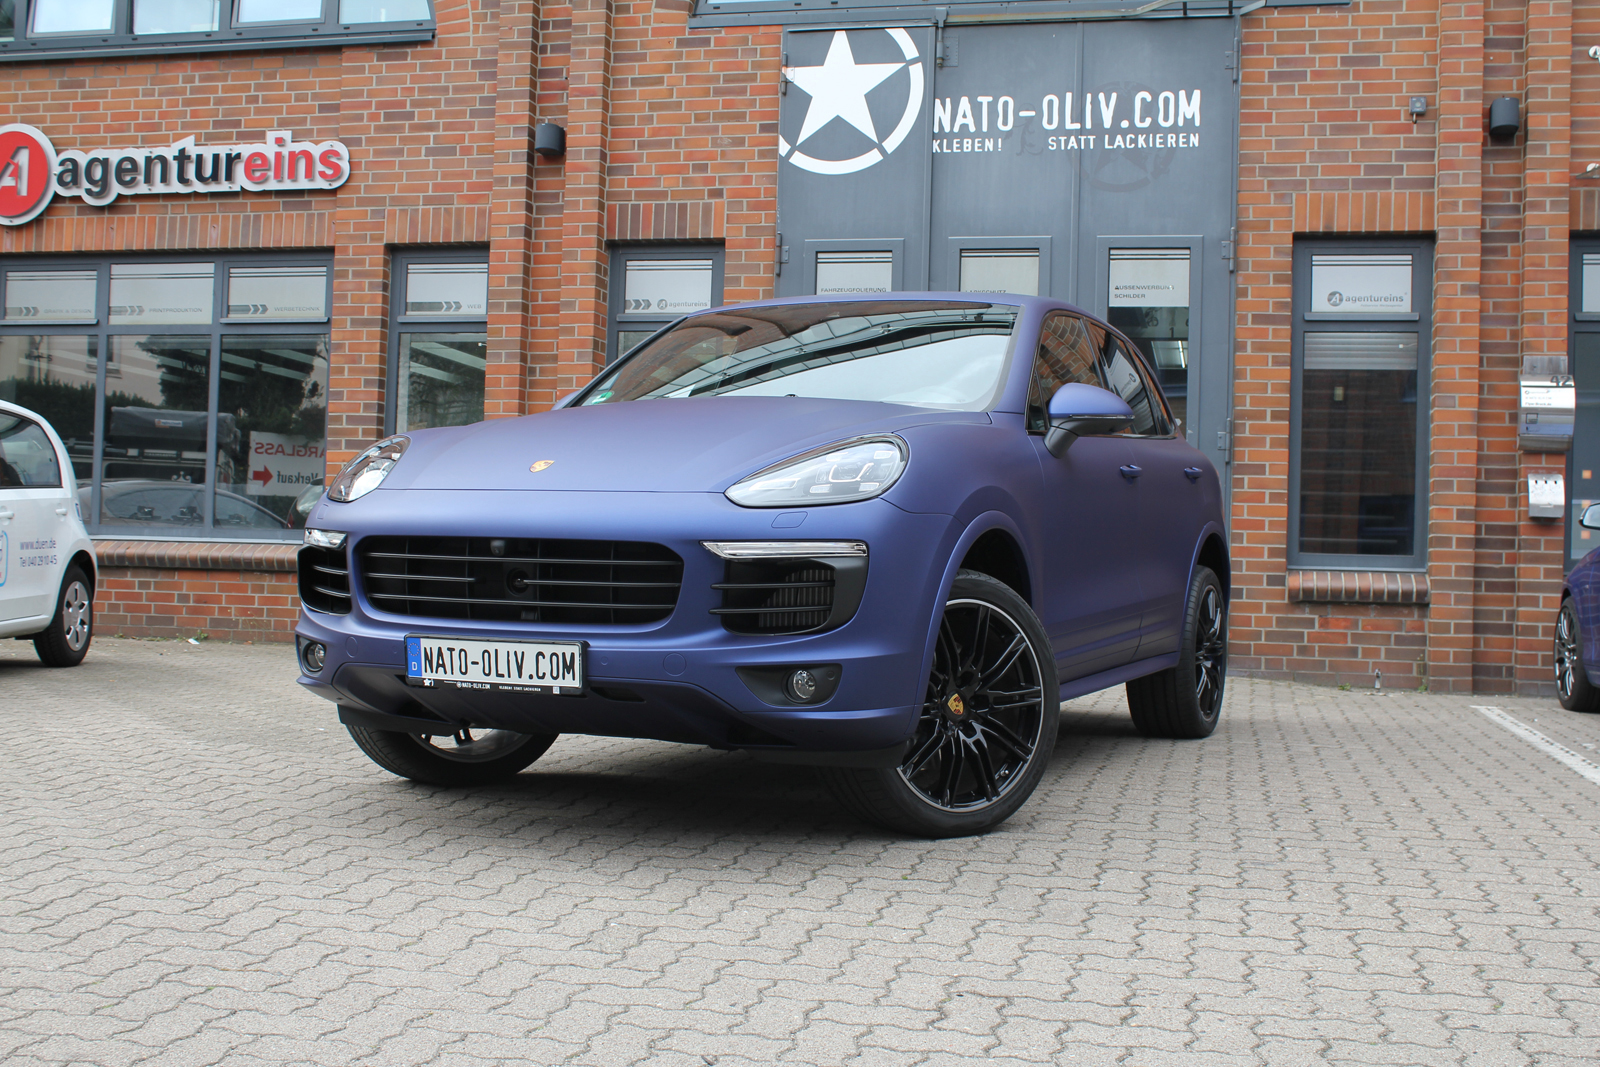 PORSCHE_CAYENNE_FOLIERUNG_MIDNIGHT_BLUE_MATT_METALLIC_05